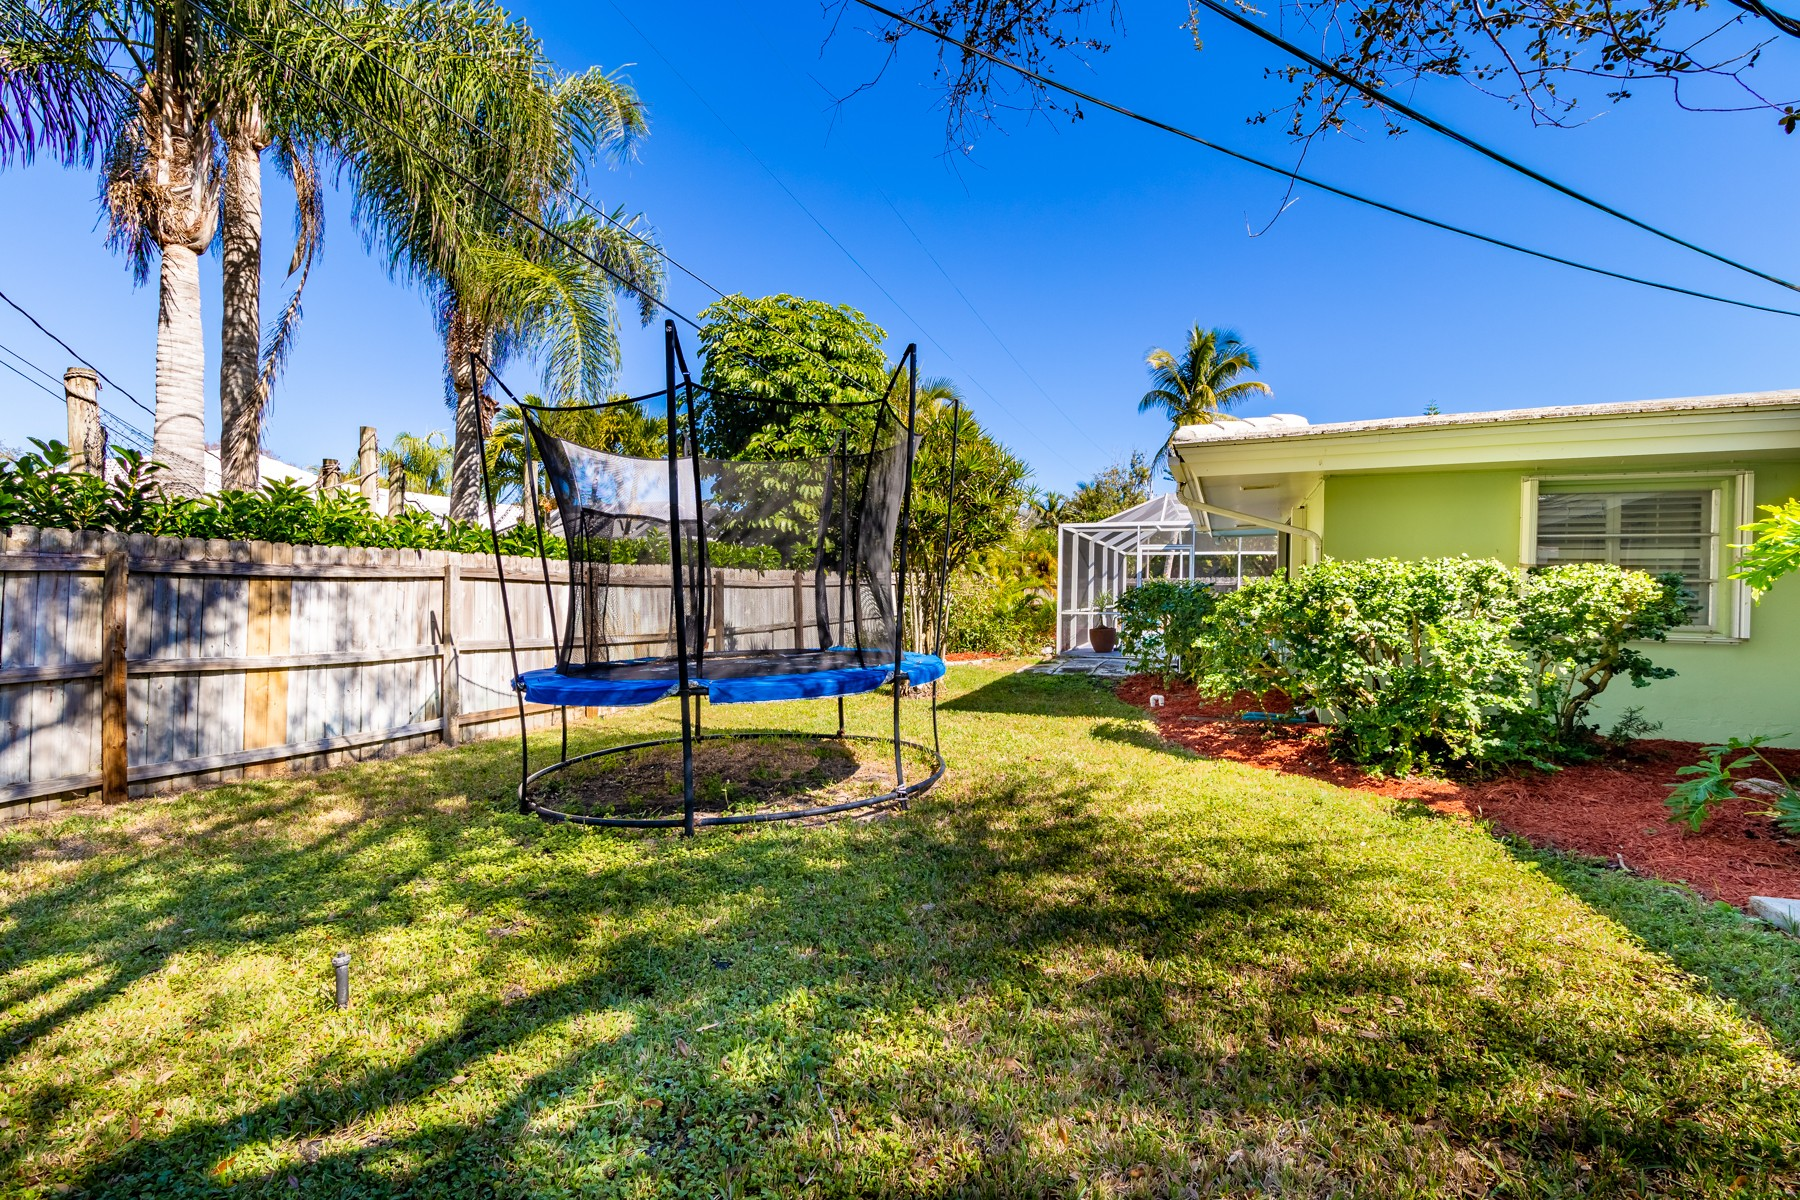 Additional photo for property listing at Spacious, pool home in the heart of desirable Indialantic By the Sea. 314 Cocoa Avenue Indialantic, Florida 32903 United States